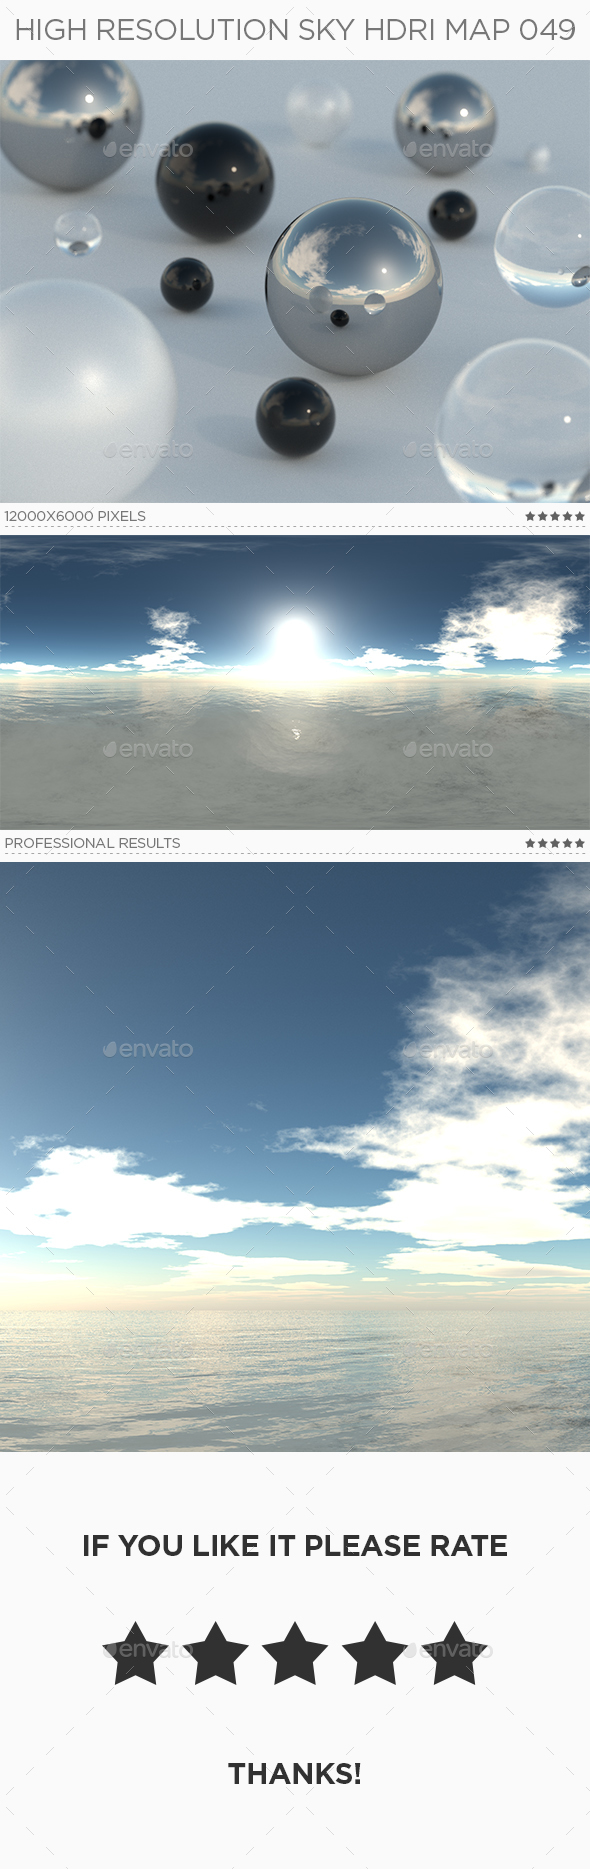 High Resolution Sky HDRi Map 049 - 3DOcean Item for Sale